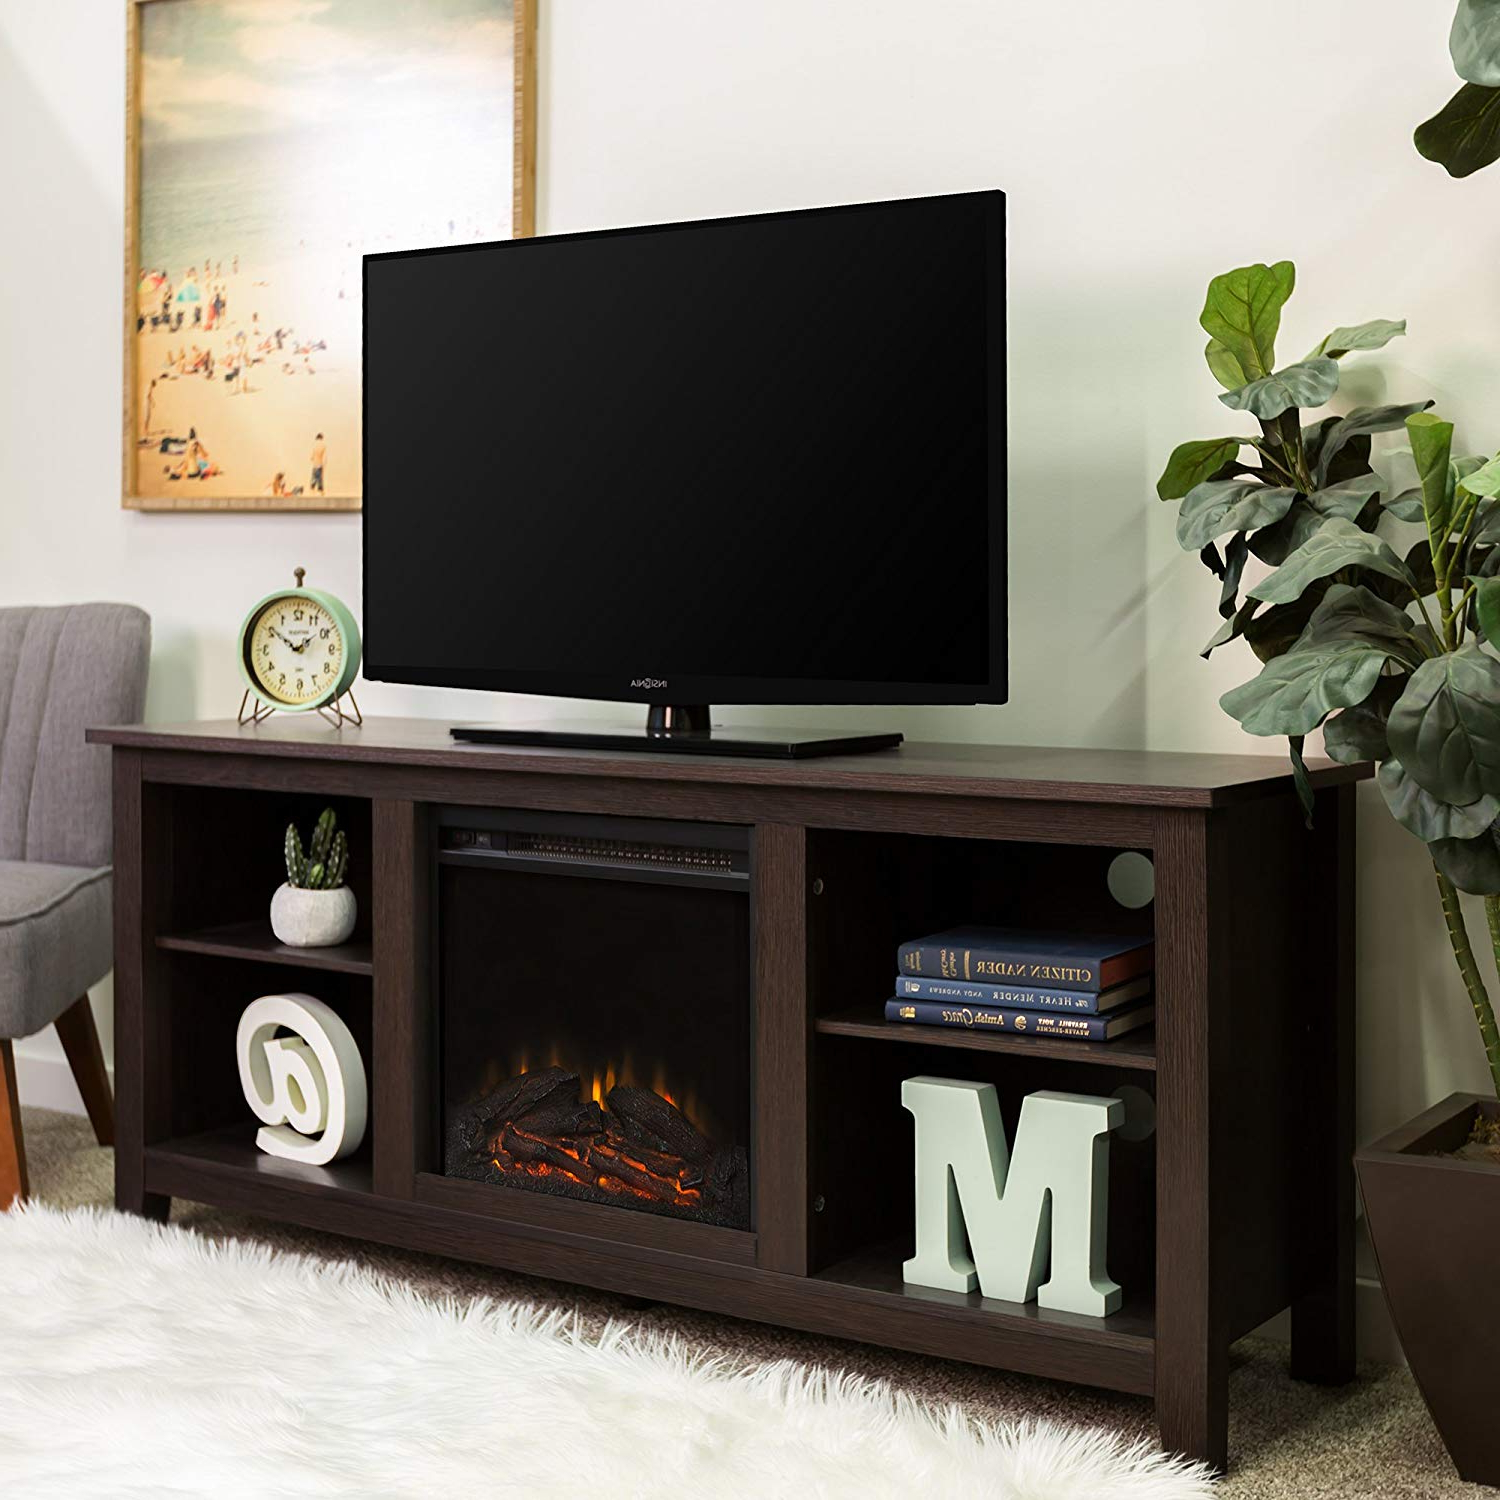 Sinclair Grey 68 Inch Tv Stands In Well Known Amazon: Walker Edison W58Fp18Es Fireplace Tv Stand, Espresso, 58 (Gallery 10 of 20)